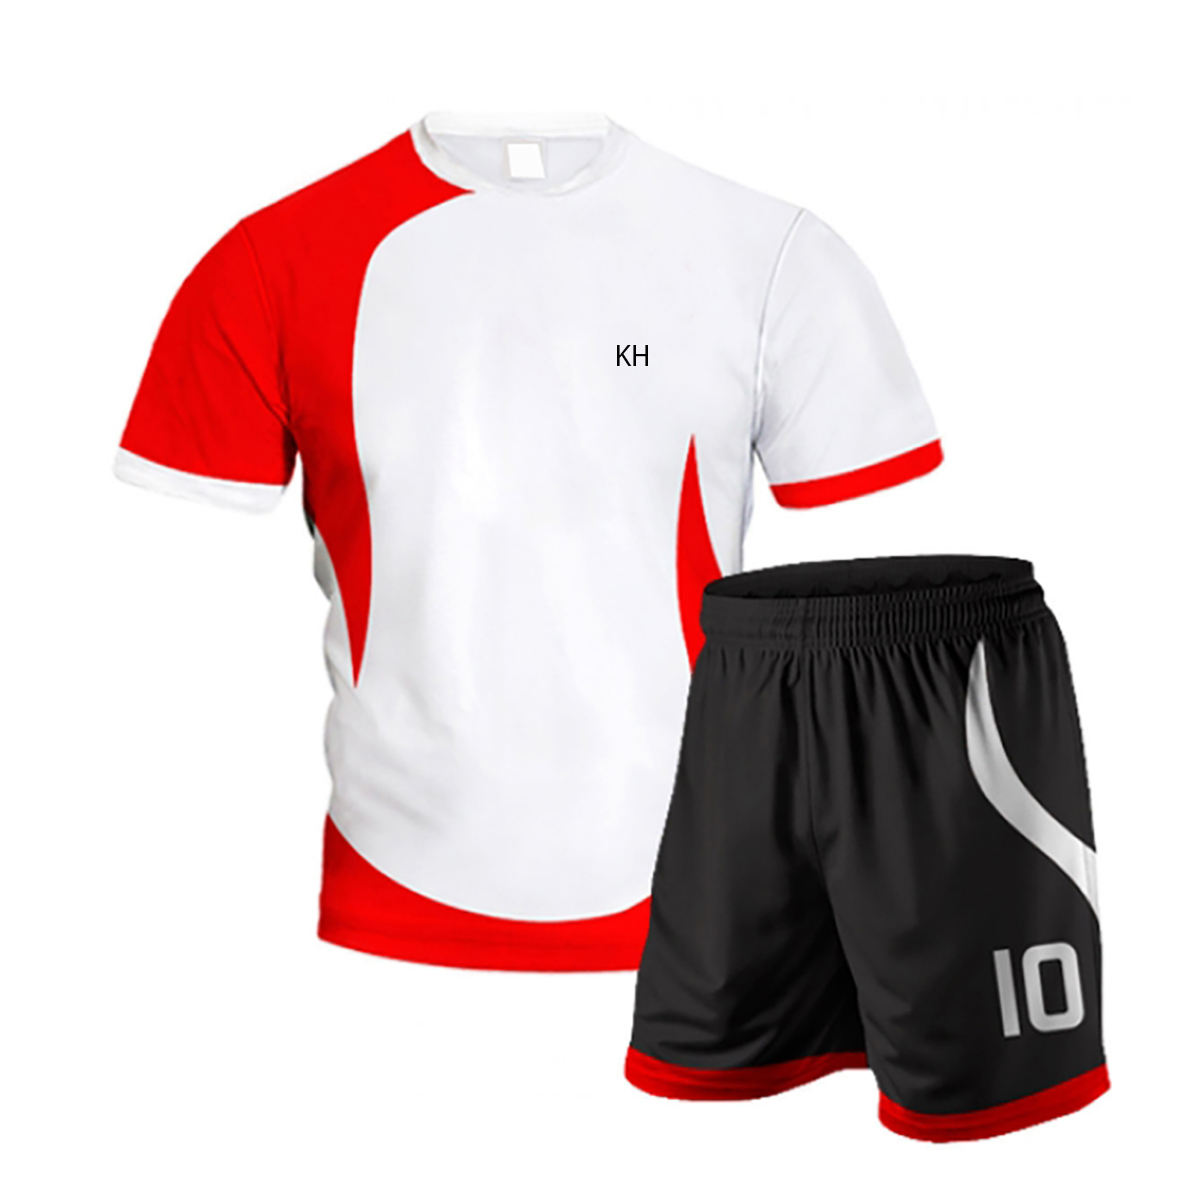 Groothandel <span class=keywords><strong>Voetbal</strong></span> Slijtage Jersey Uniform Ademend Gedrukt <span class=keywords><strong>Club</strong></span> Team Kit